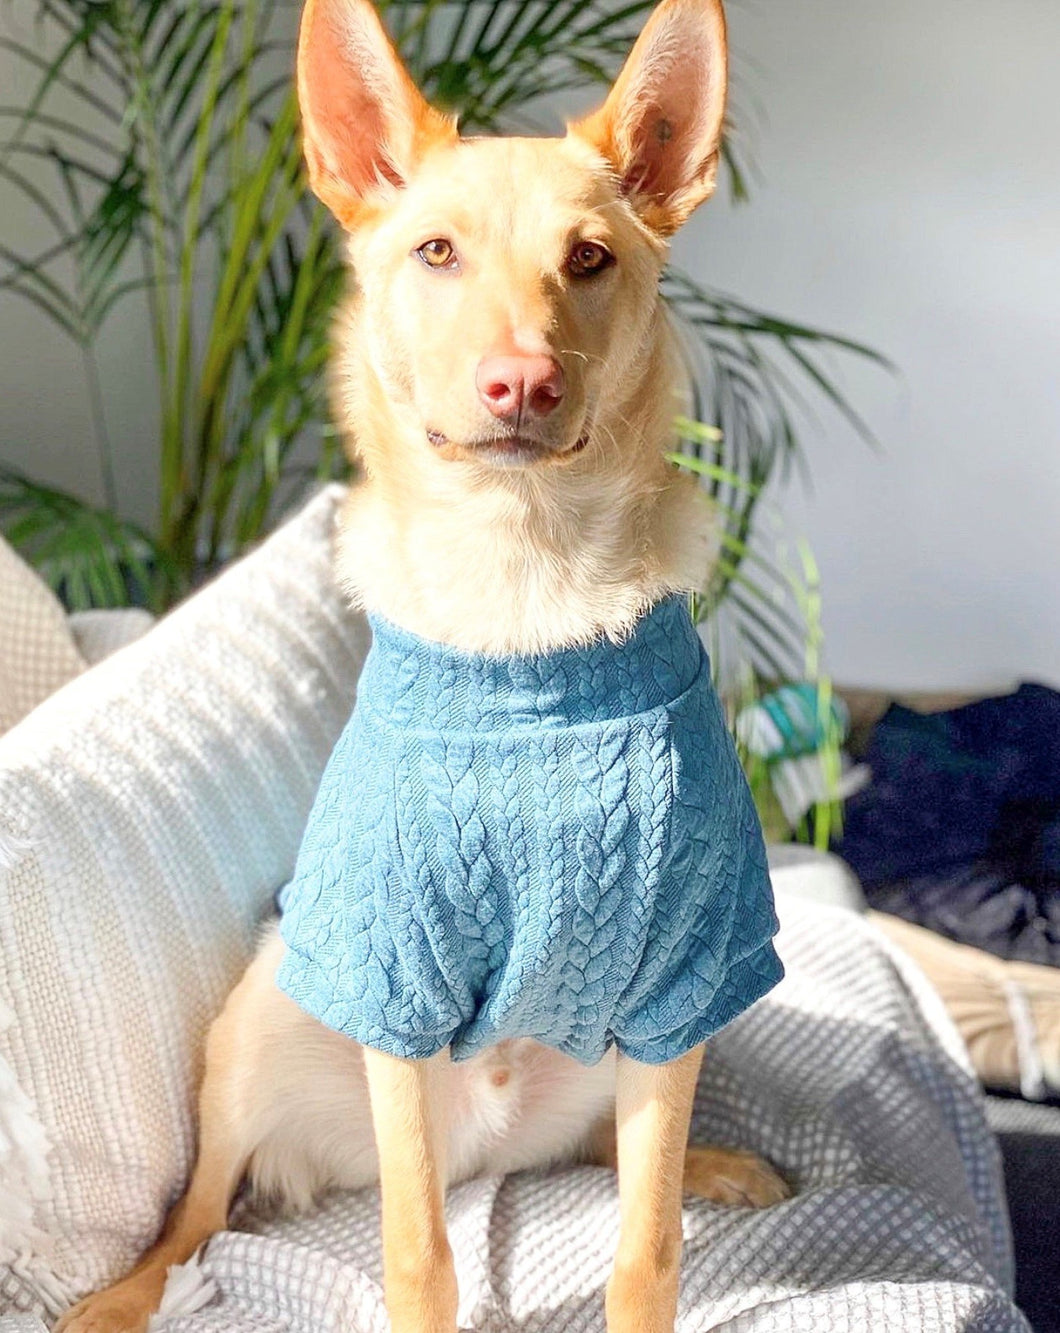 Dog Jumper - Teal Cable